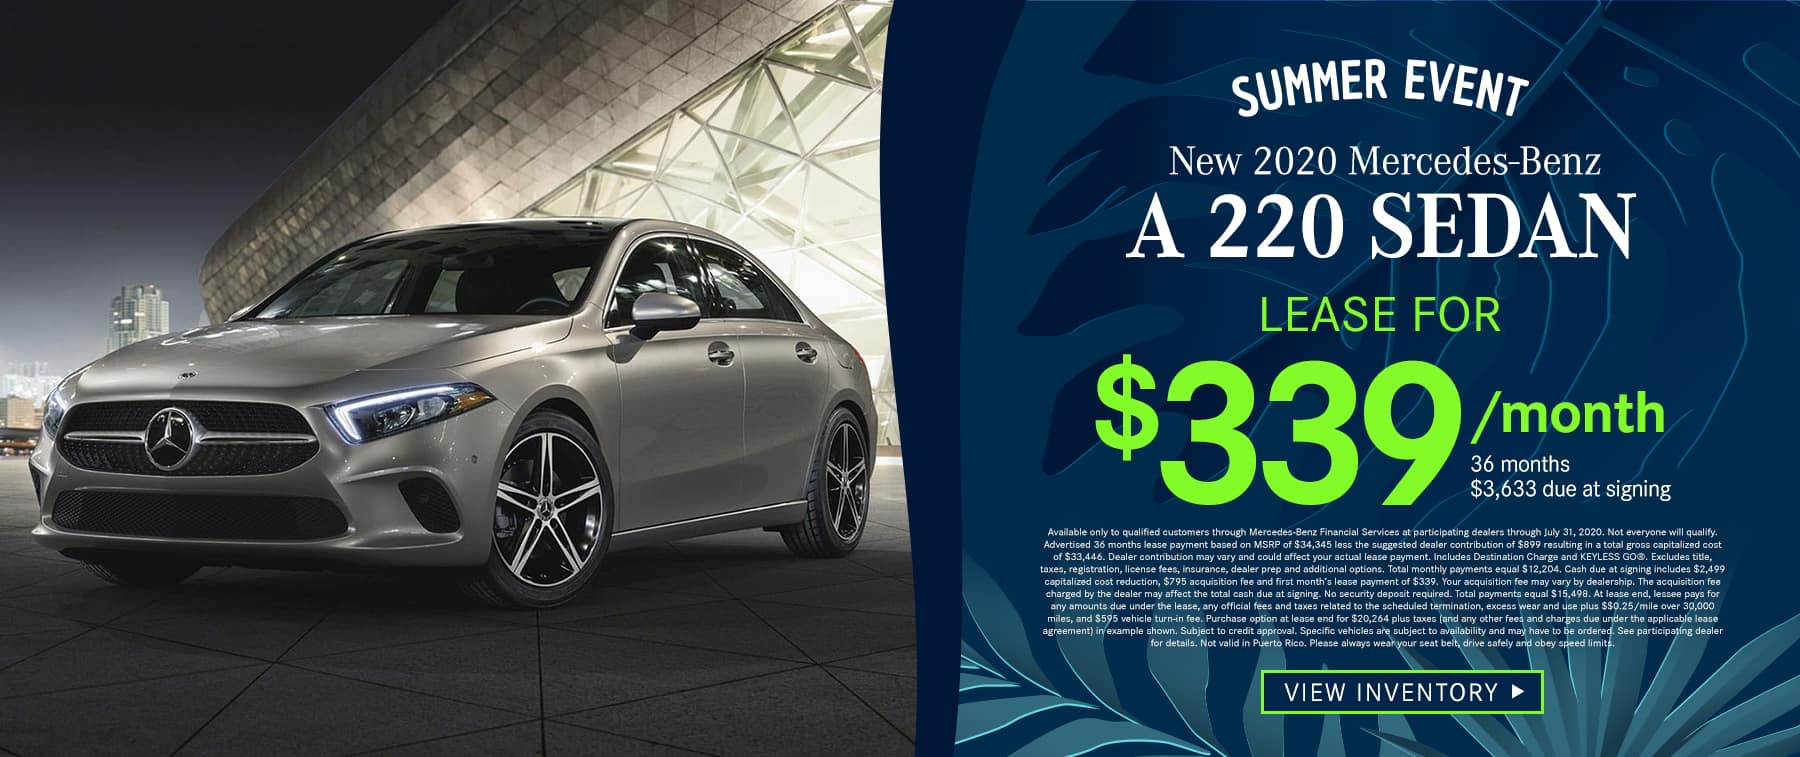 2020 A 220 Sedan Lease as low as $339 Per Month 36 Months/10k Miles $3,633 Due at Signing